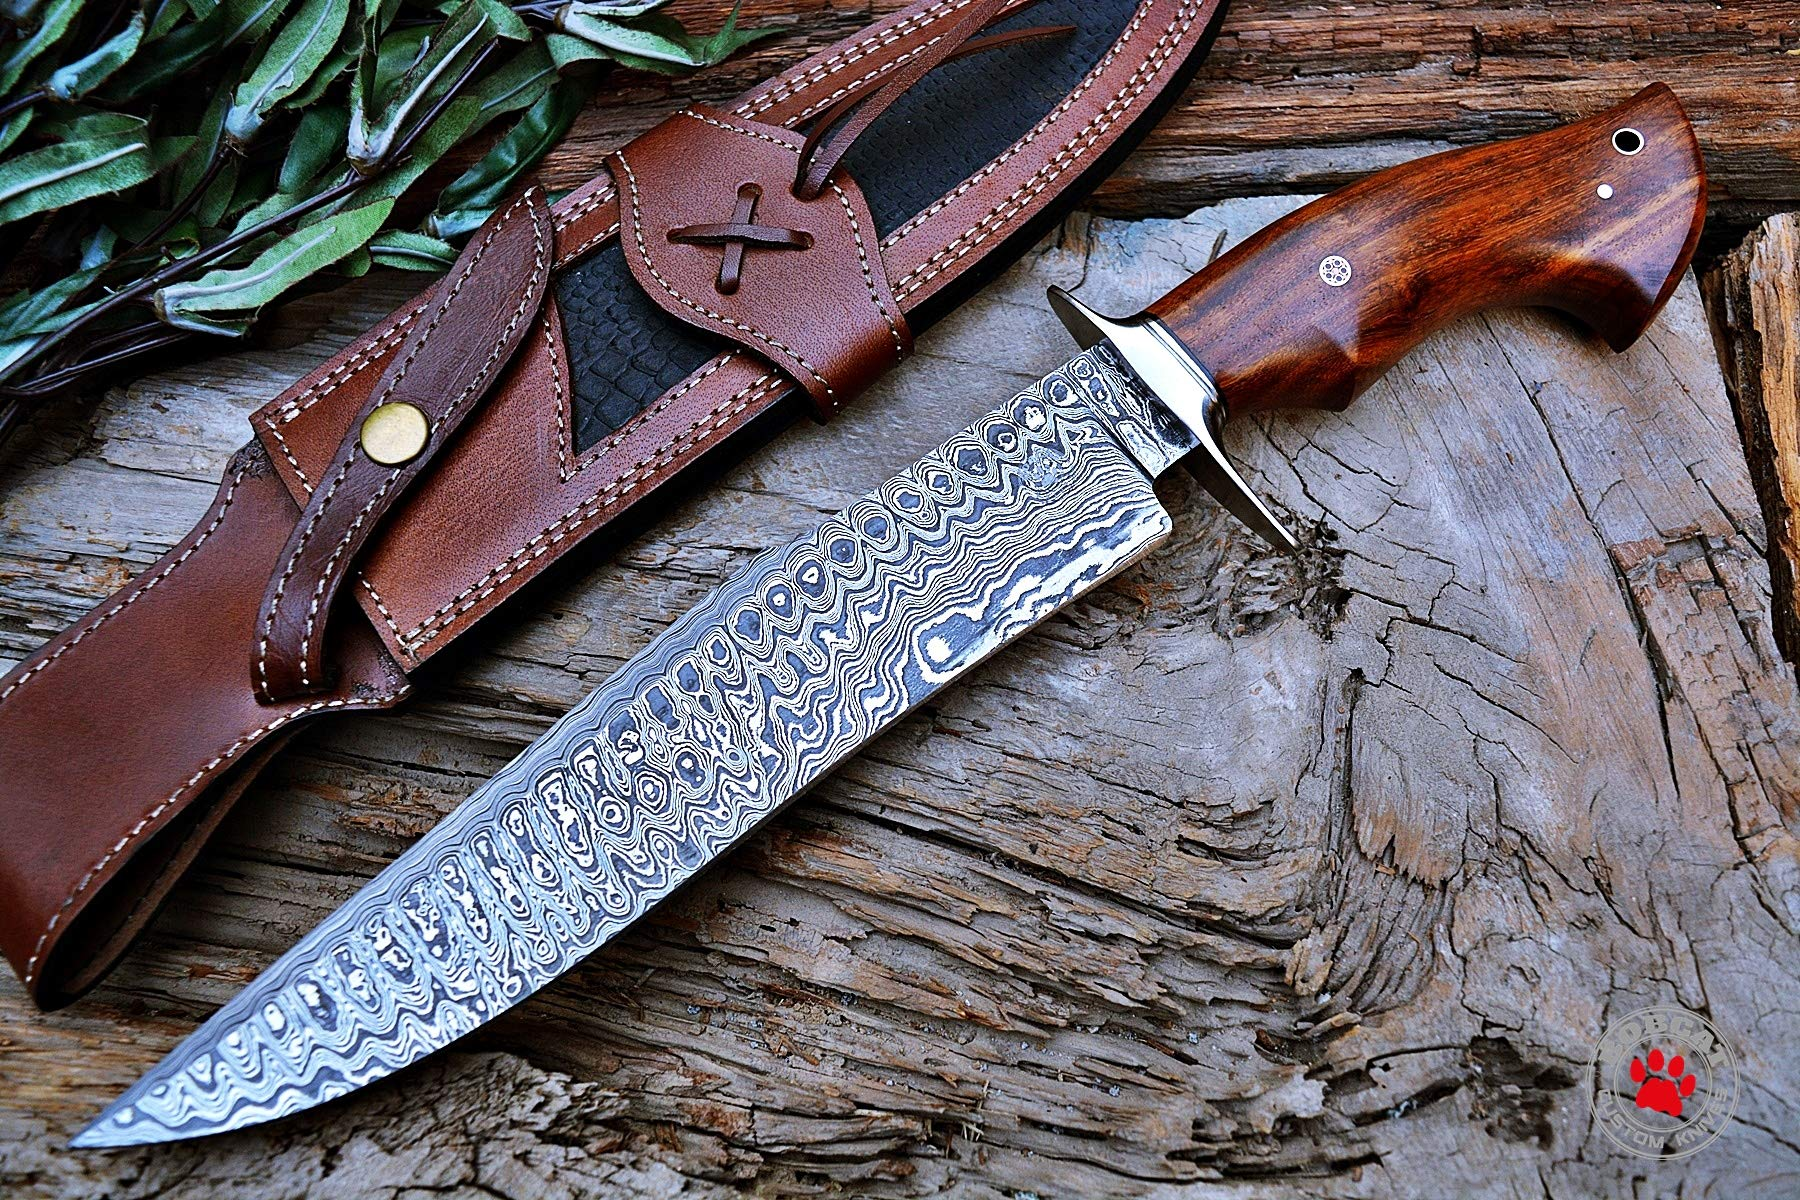 Custom Handmade Bowie Knife Hunting Knife Promotional Price Full Tang Damascus Steel 10'' Solid Walnut Wood Handle with Nice Sheath by Bobcat Knives